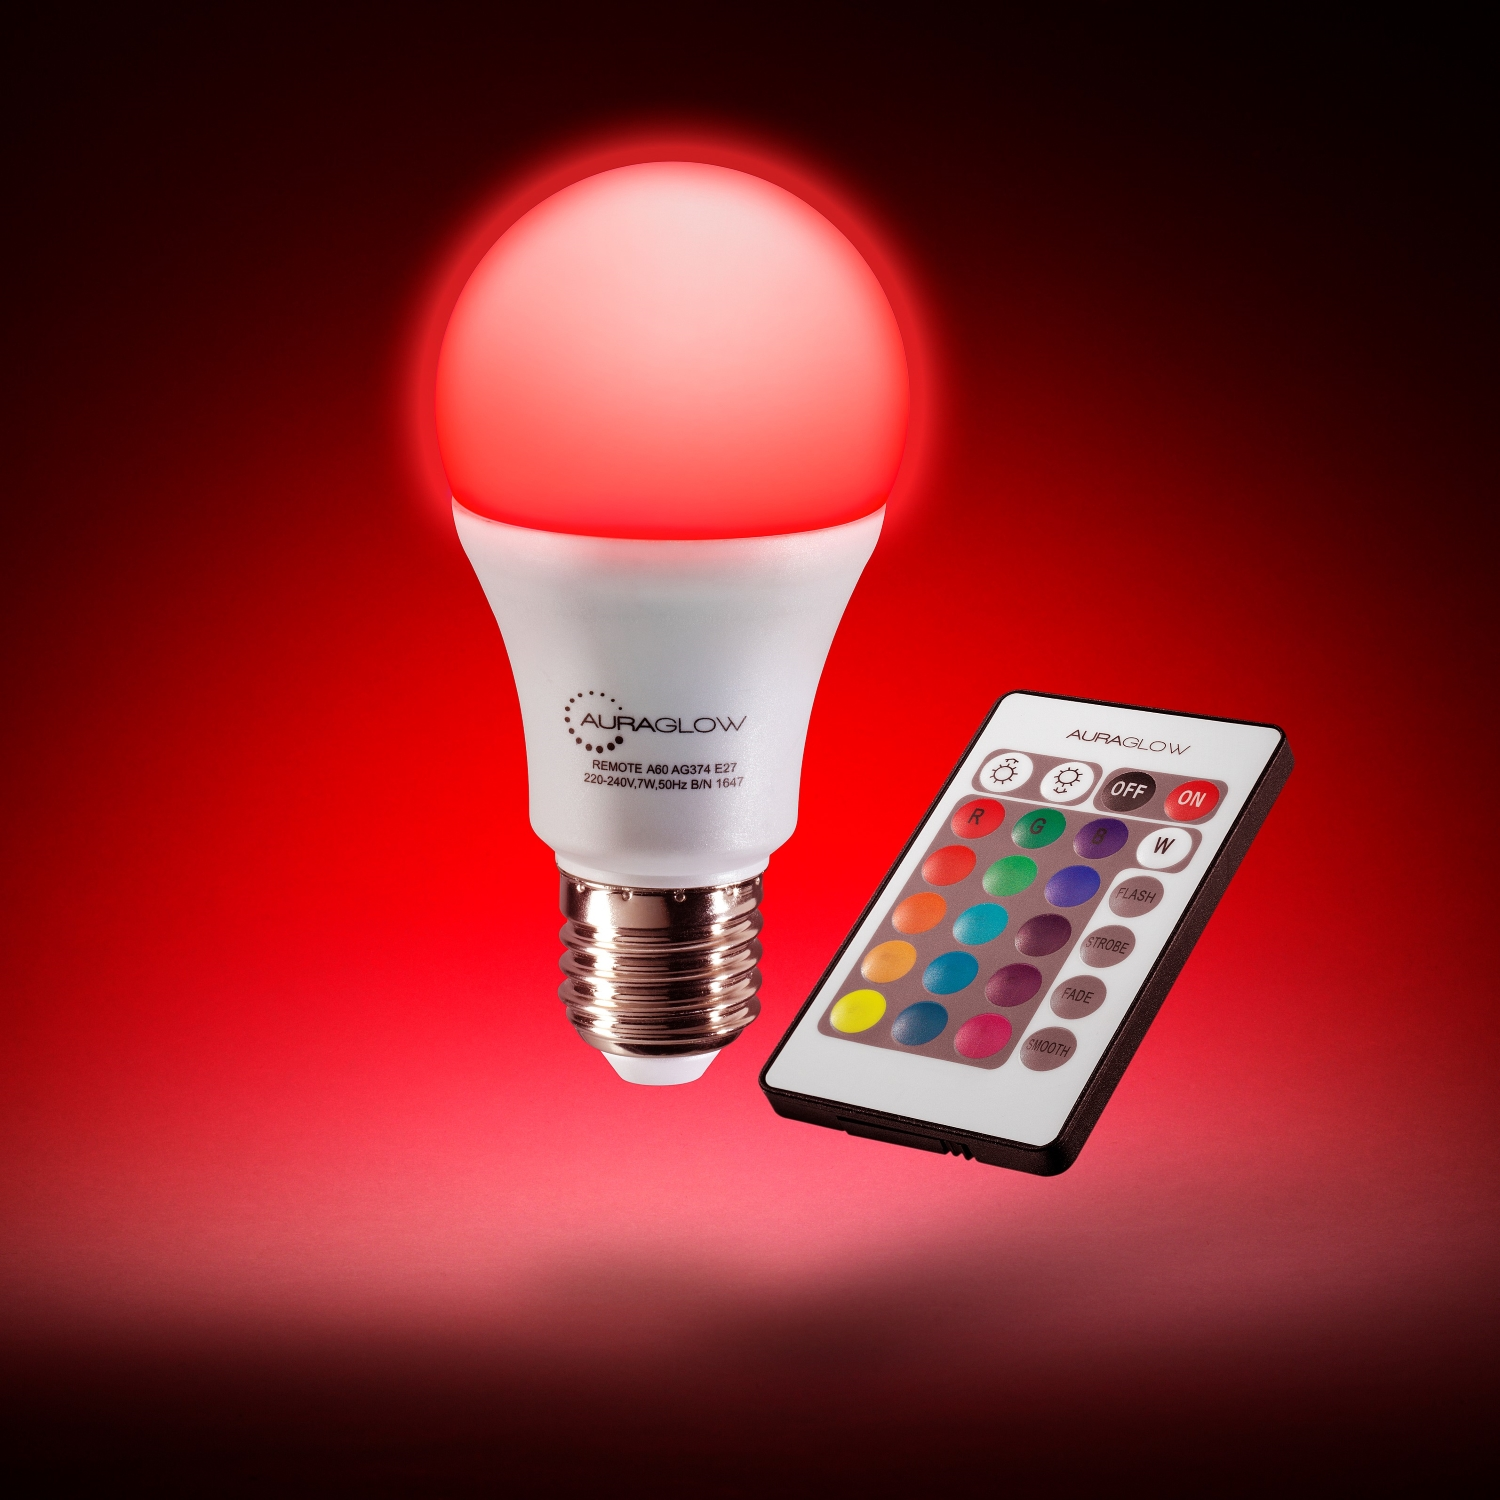 auraglow 7w remote control colour changing led light bulb. Black Bedroom Furniture Sets. Home Design Ideas